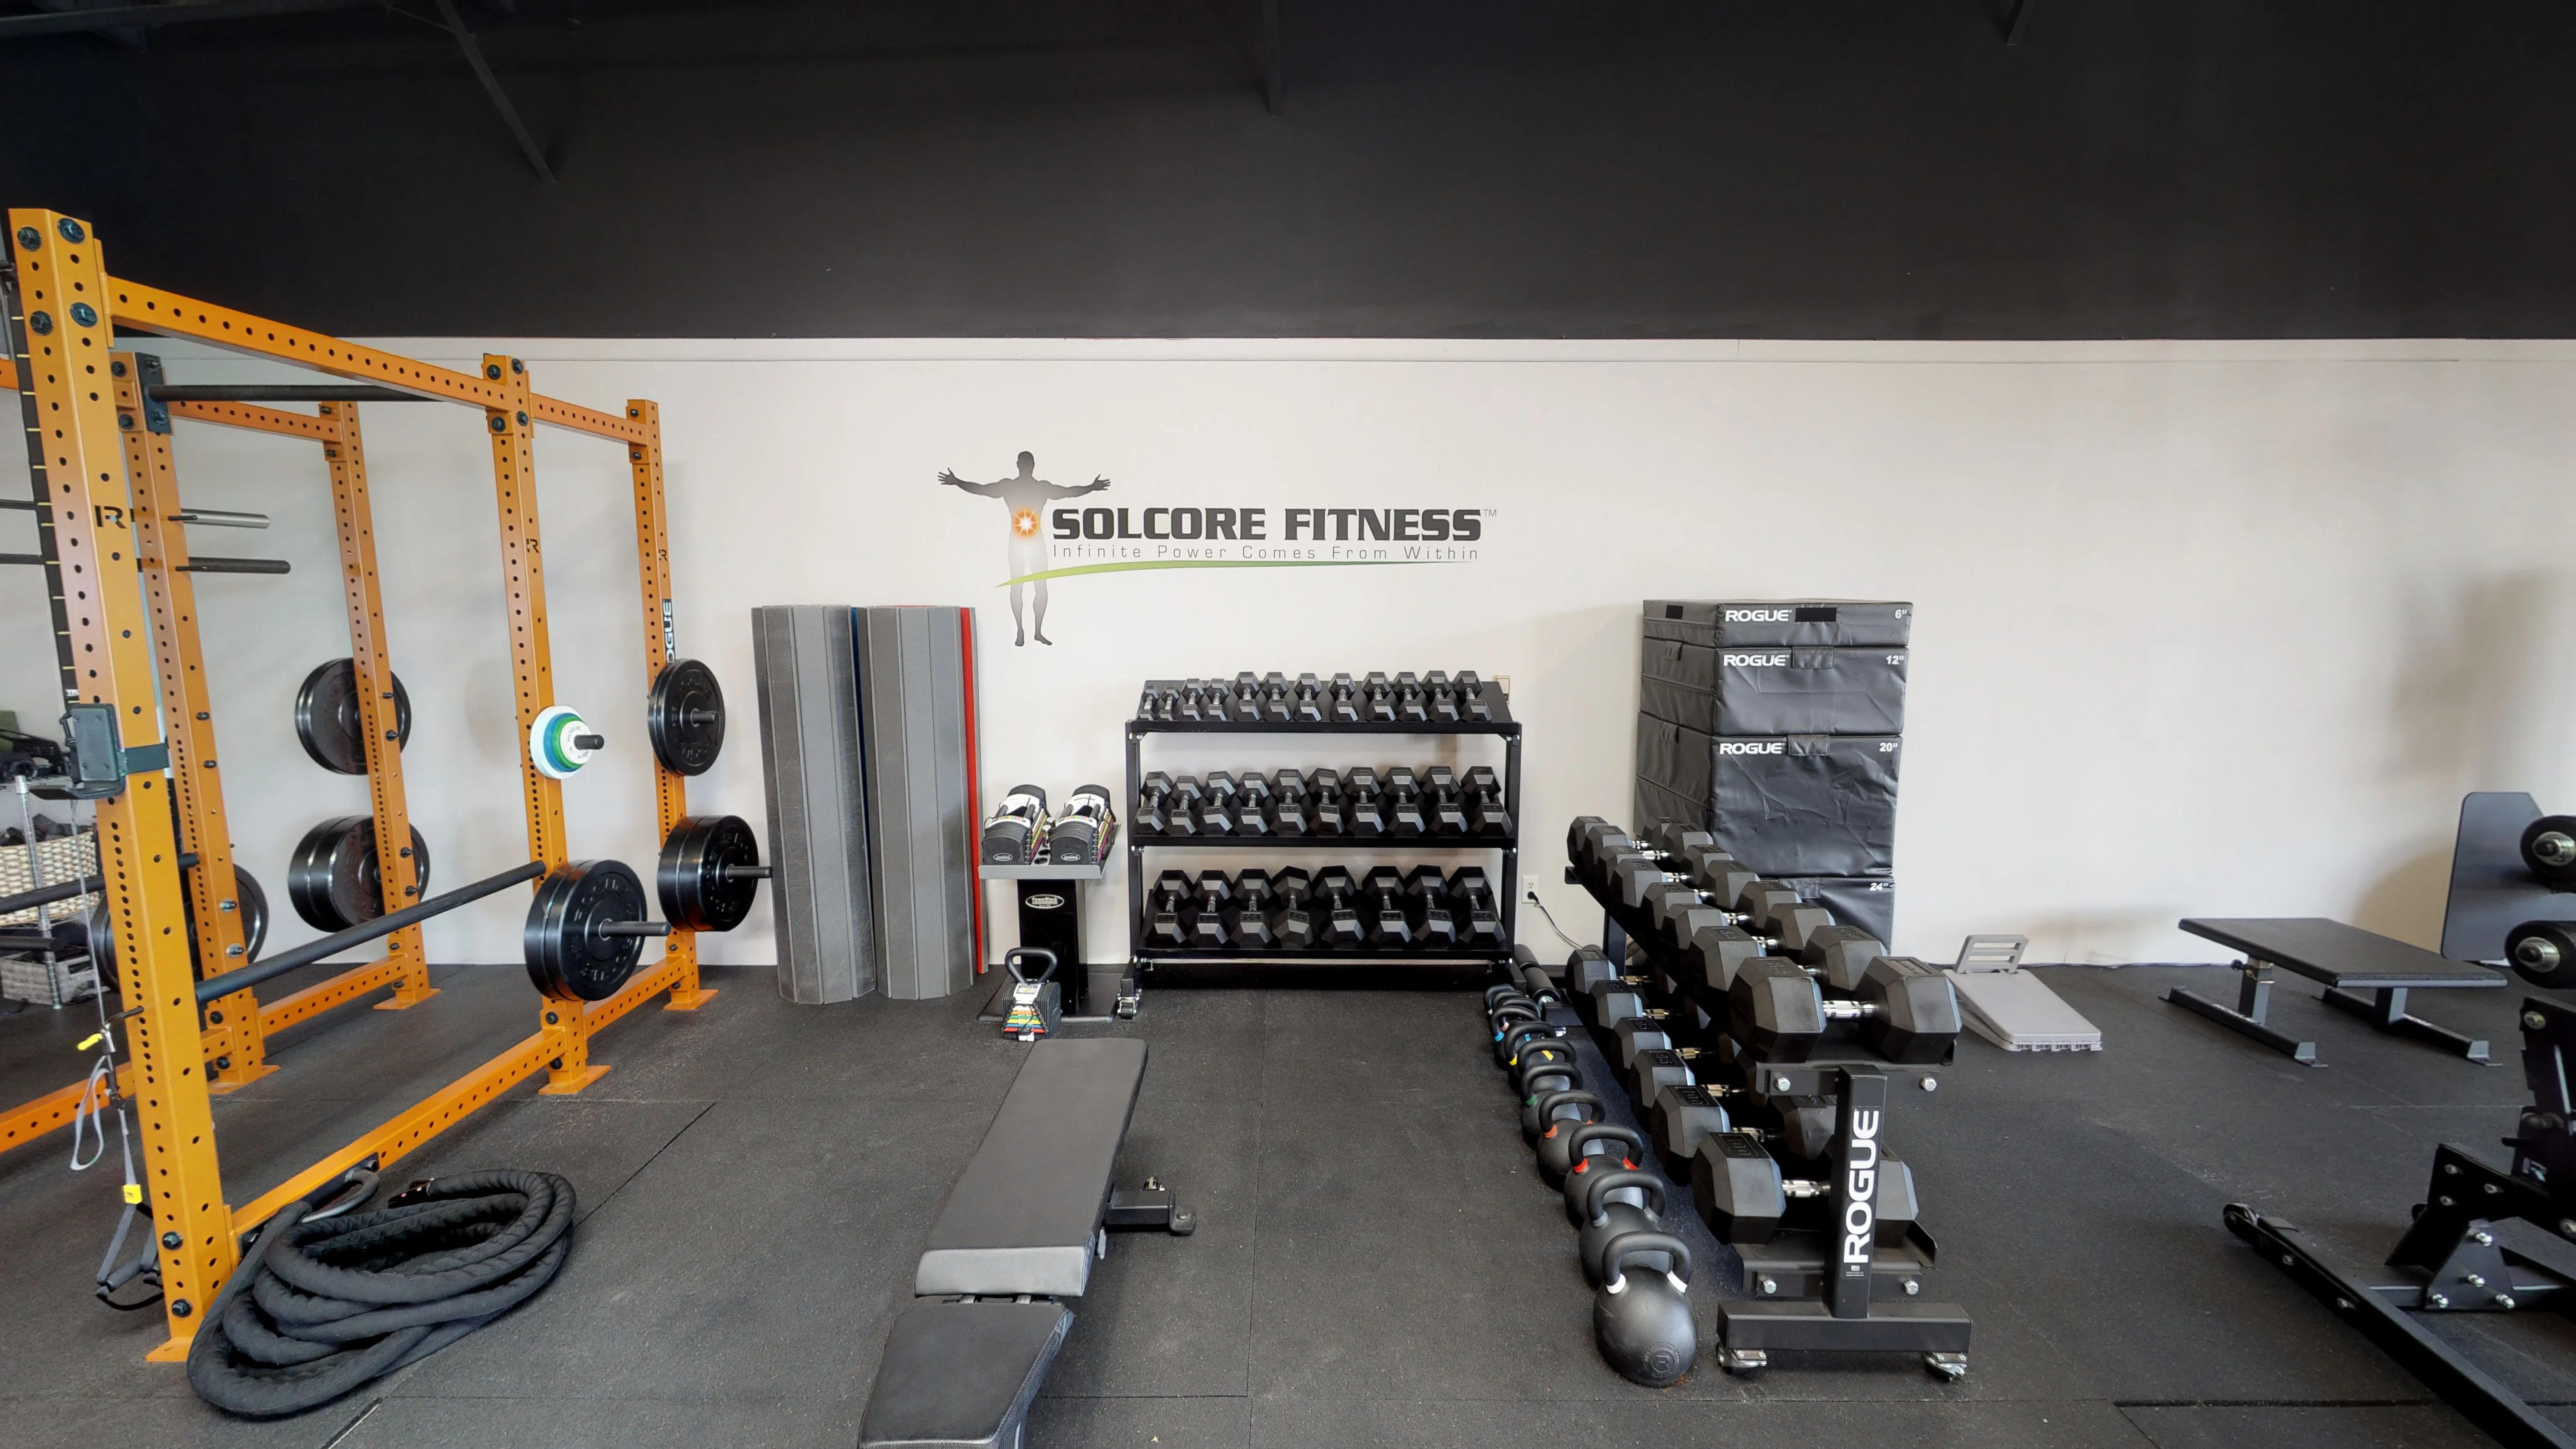 Solcore Fitness image 2